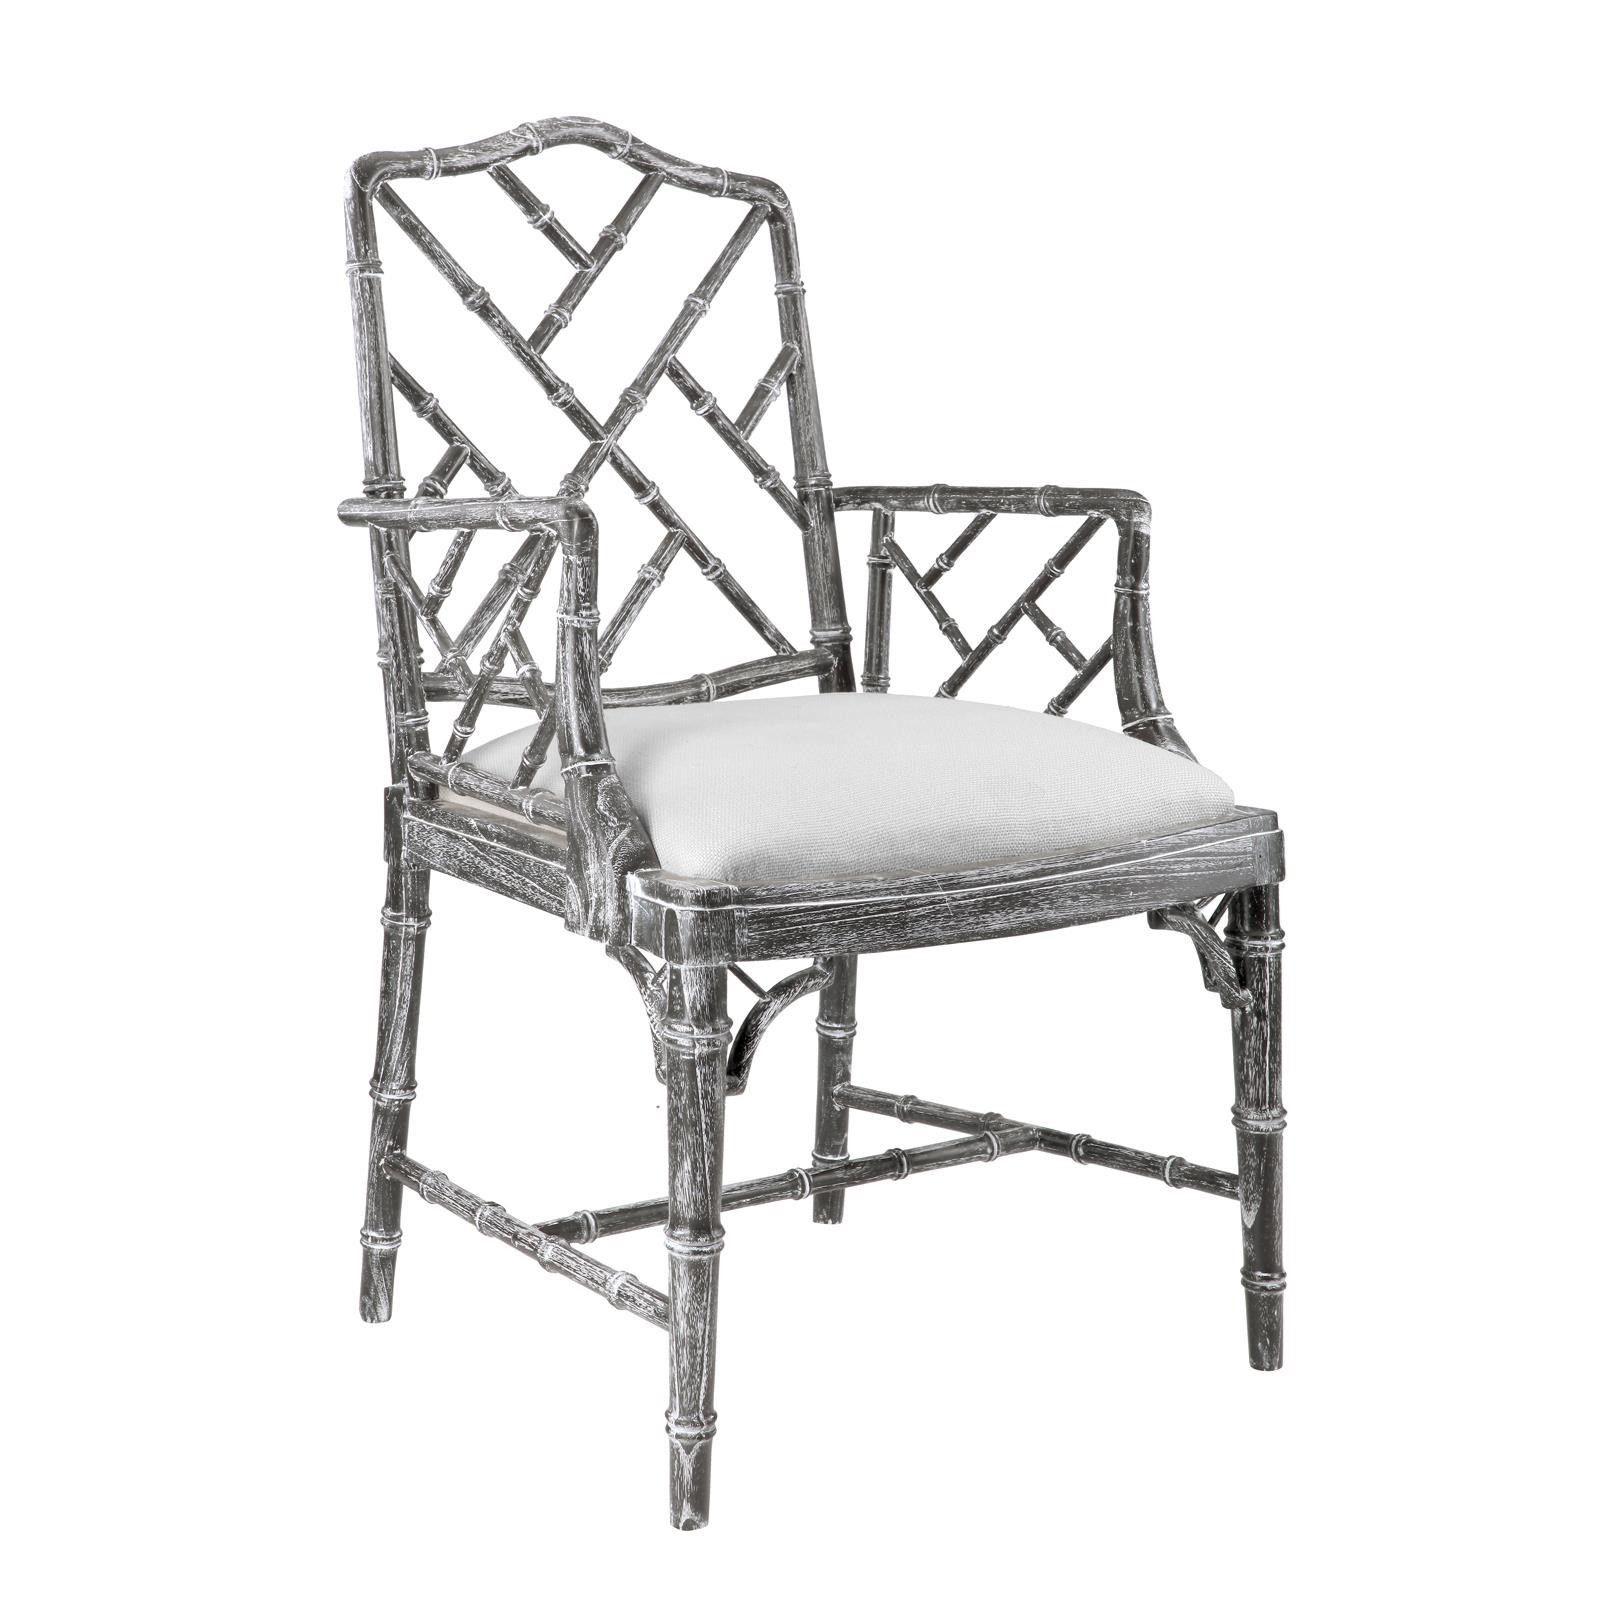 Bungalow 5 Quay Faux Bamboo Chippendale Arm Chair in Gray